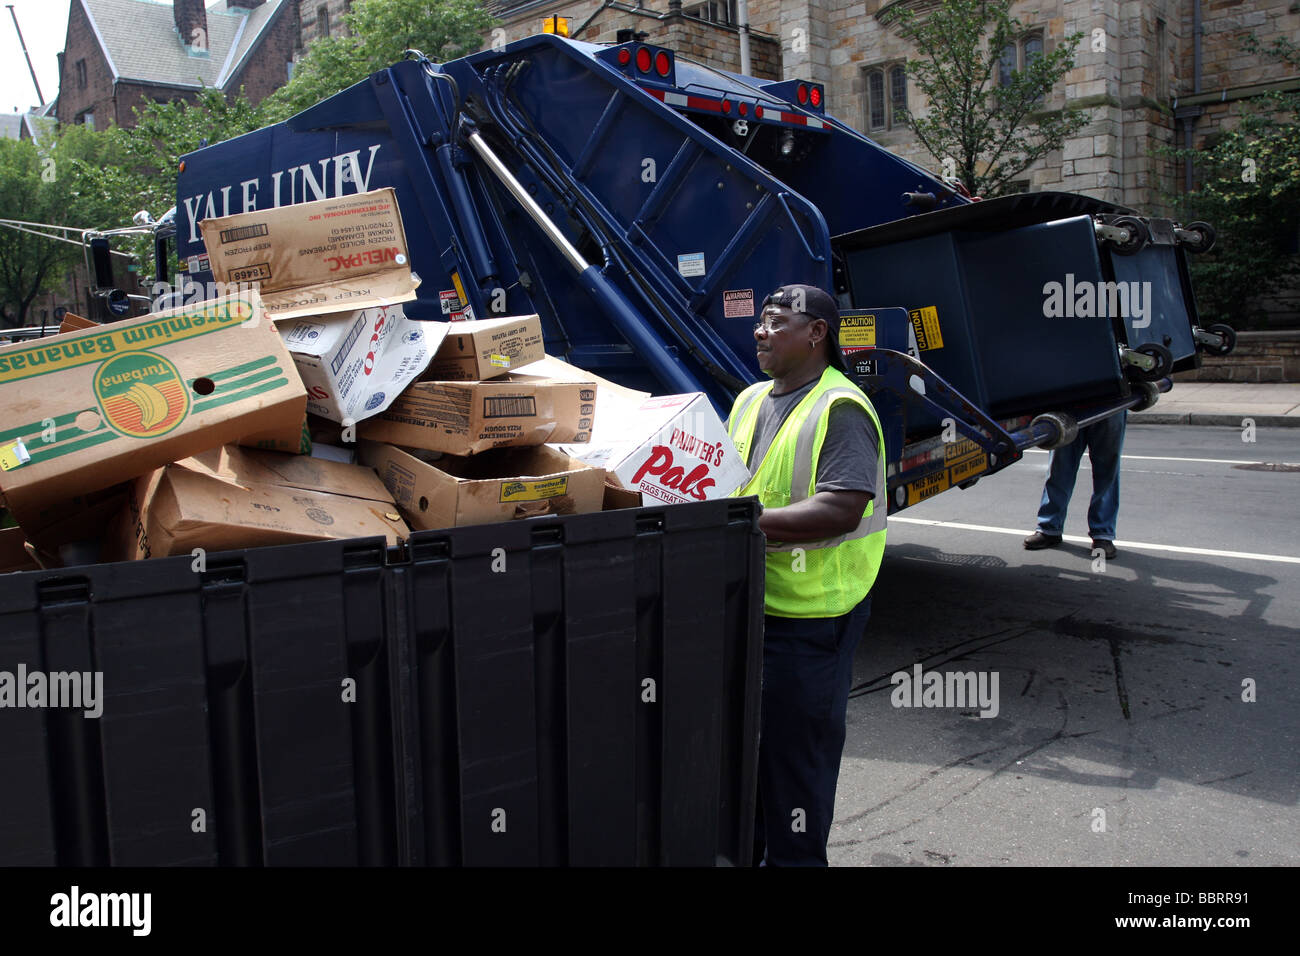 A man prepares to move a container filled with recyclable cardboard into a garbage truck at Yale University New - Stock Image